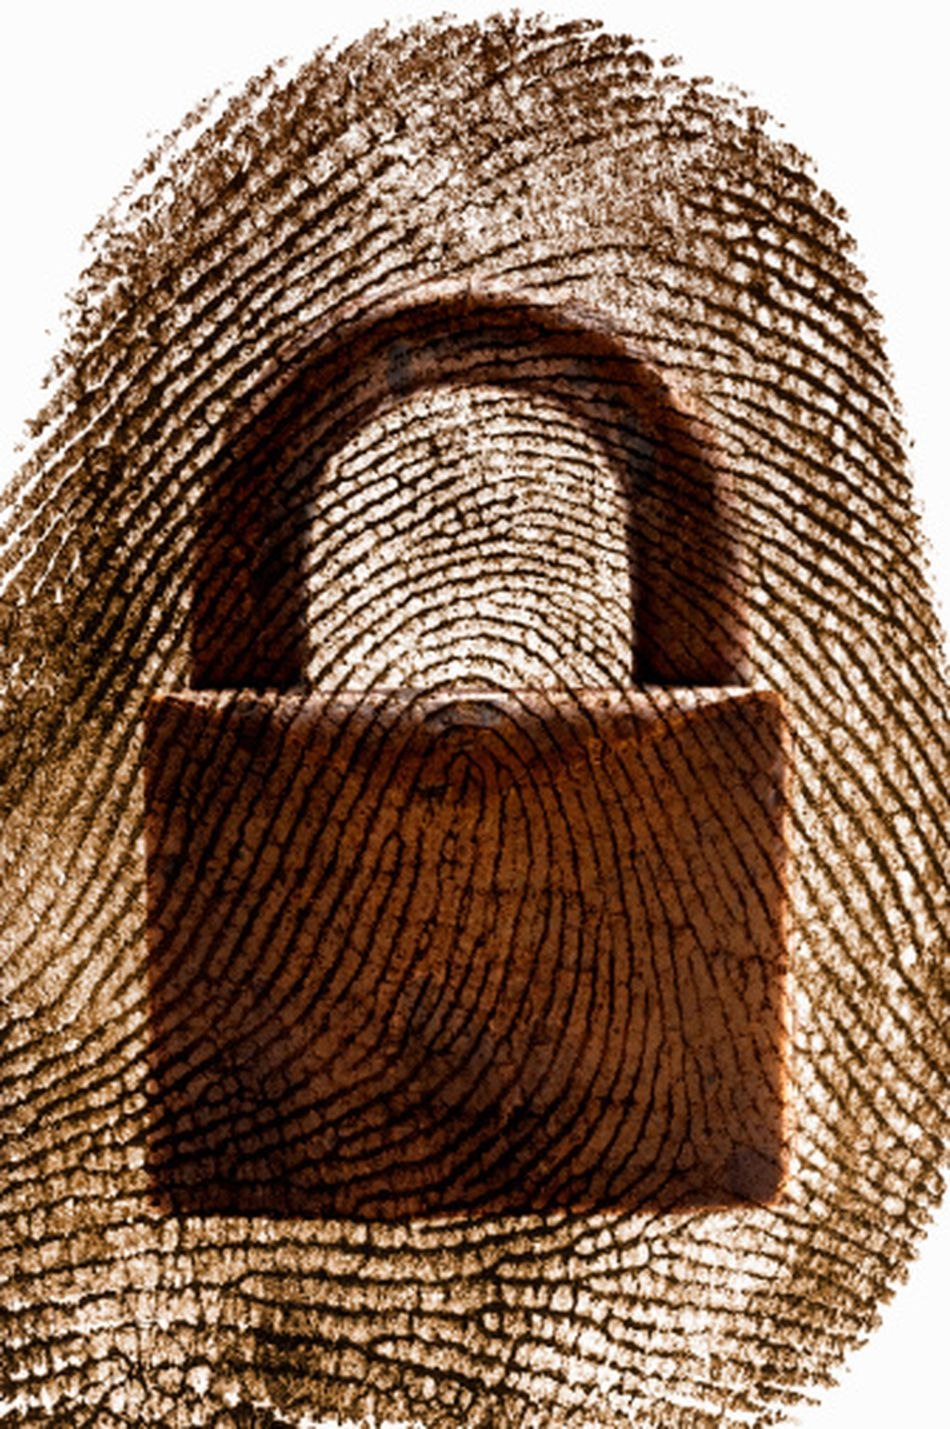 thumbprint with padlock